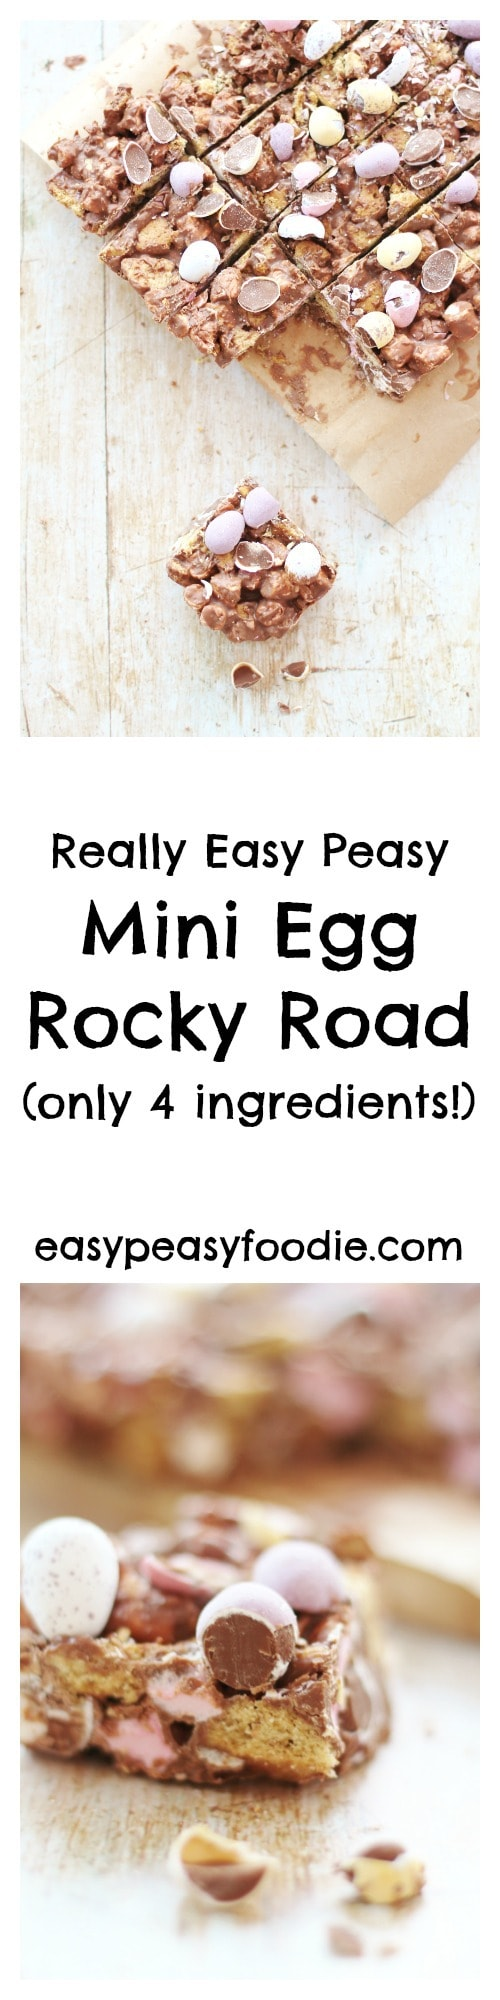 Need a super simple, 4 ingredient, no bake Easter treat that's perfect for making with kids and takes less than 10 minutes to make? Then you have to try my easy peasy Mini Egg Rocky Road! #minieggs #rockyroad #minieggrockyroad #easter #easter2018 #marshmallows #under10minutes #4ingredients #kidfriendly #eastertreats #nobake #easypeasyfoodie